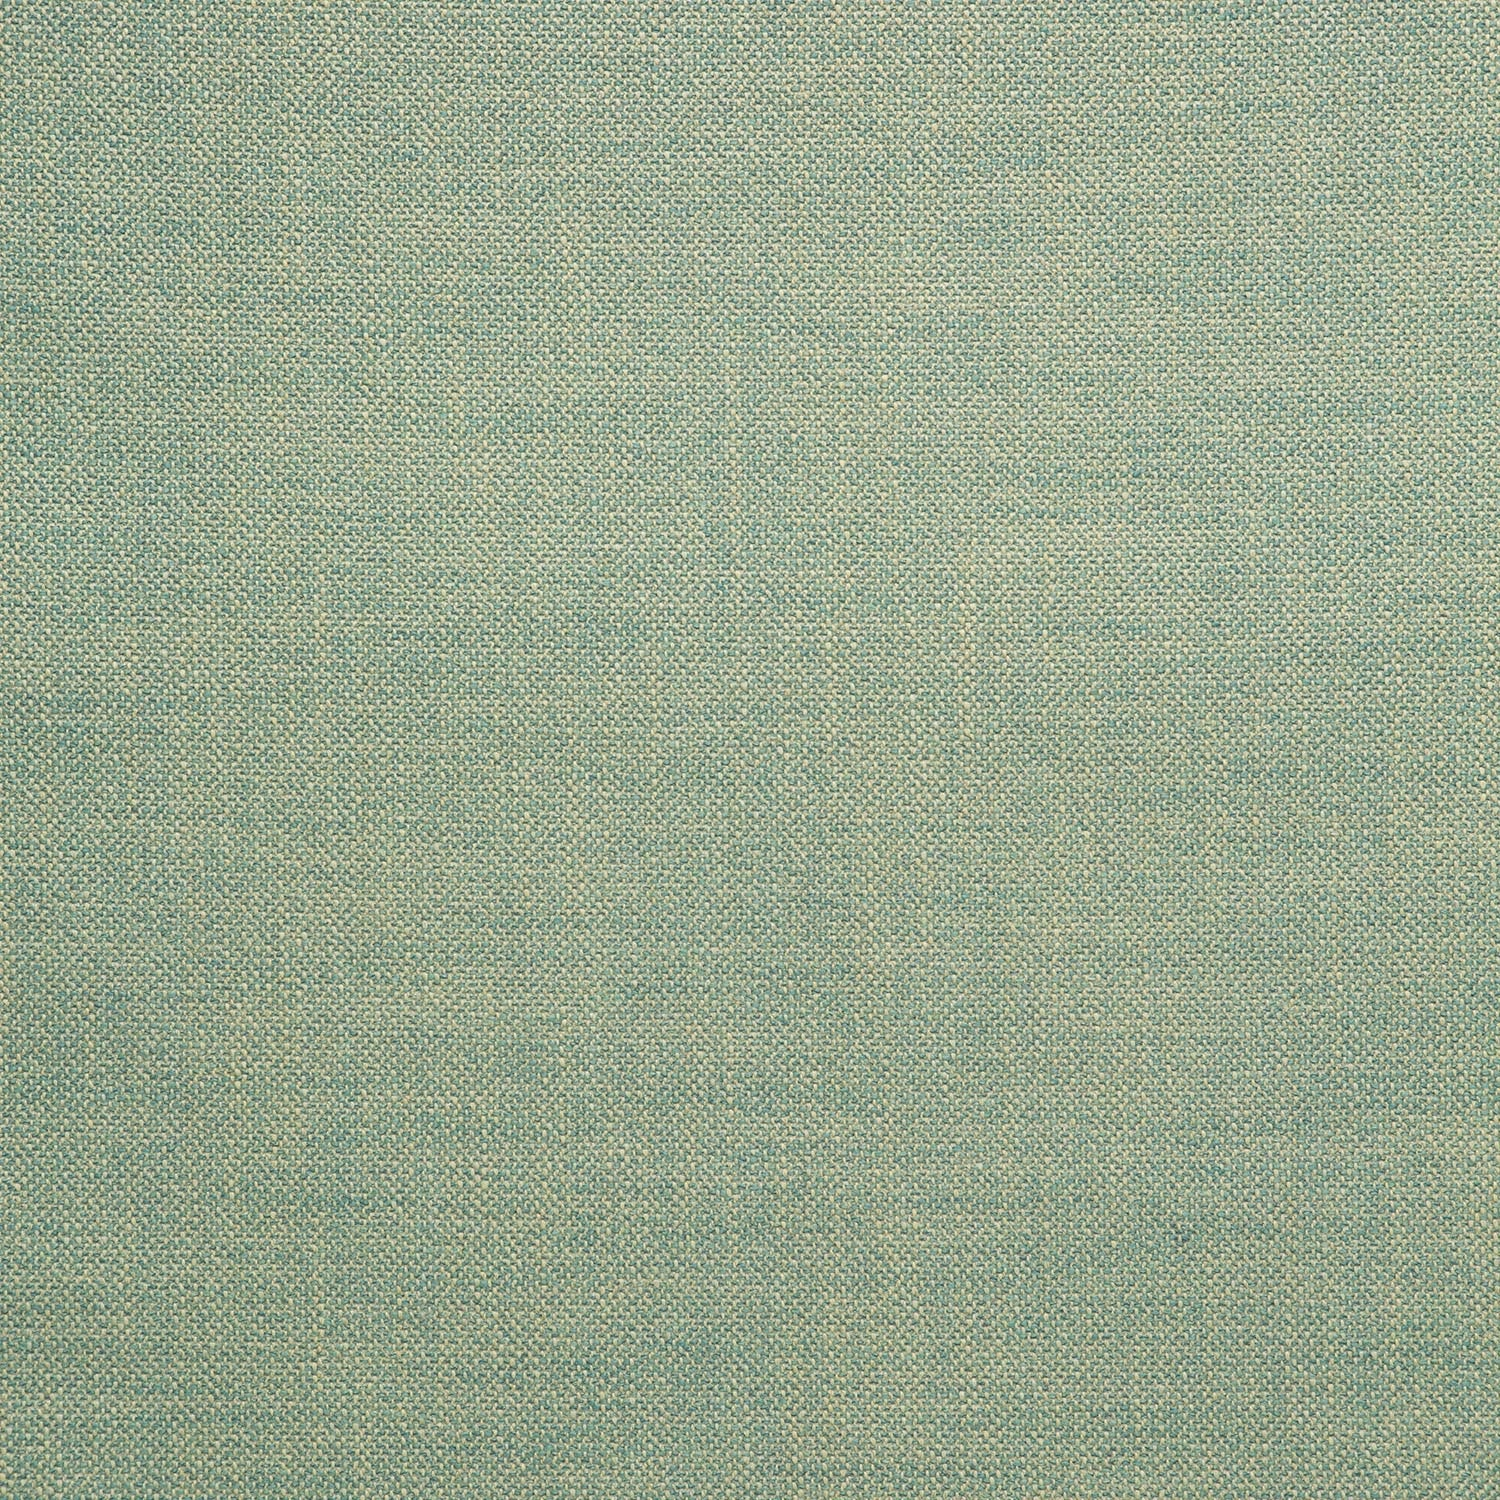 Fabric swatch of a plain turquoise weave fabric for upholstery